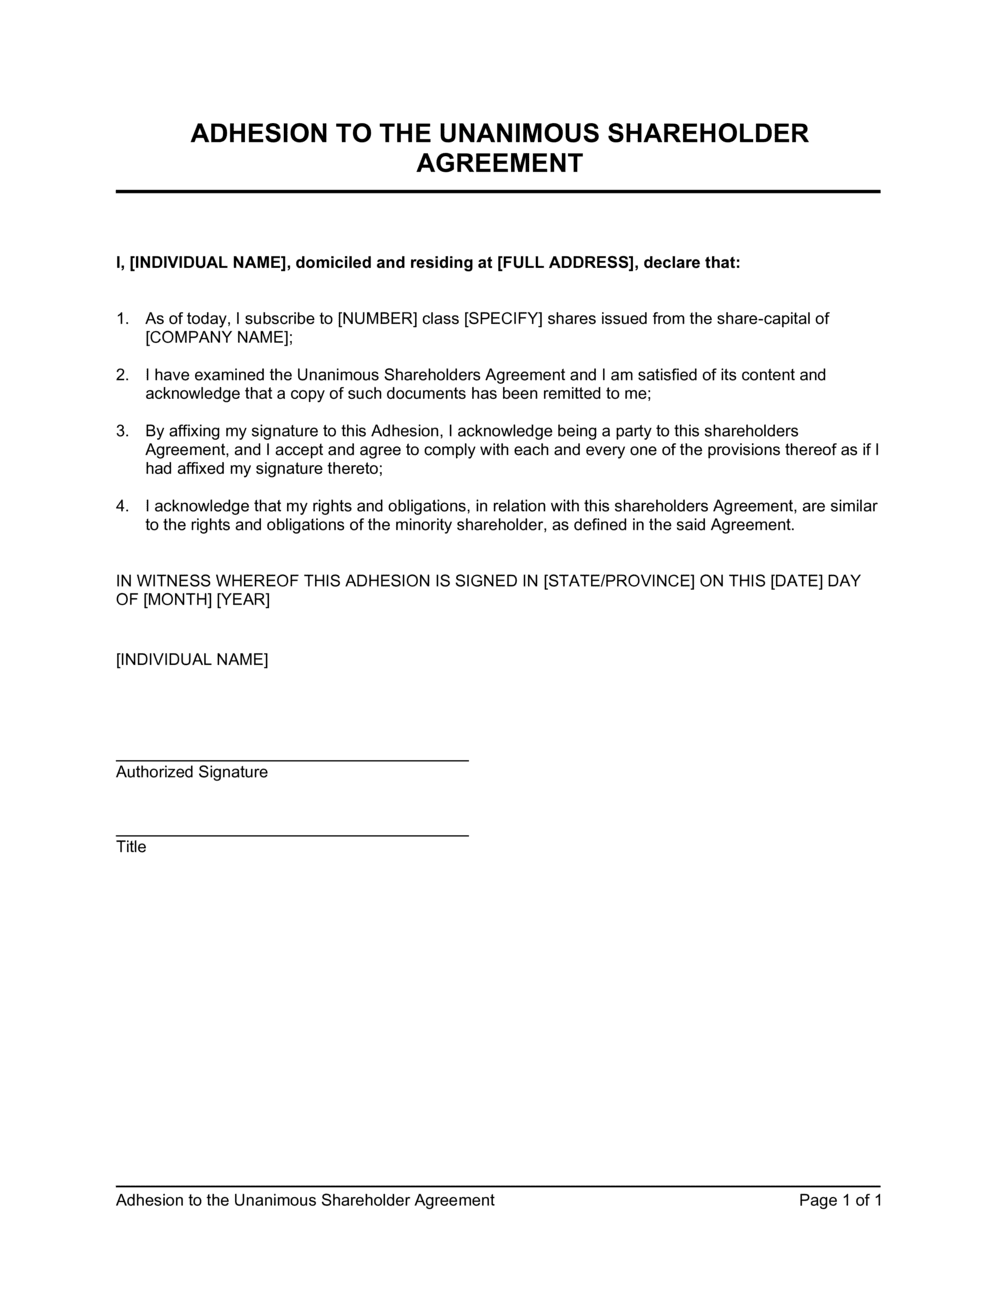 Business-in-a-Box's Adhesion to the Unanimous Shareholder Agreement Template